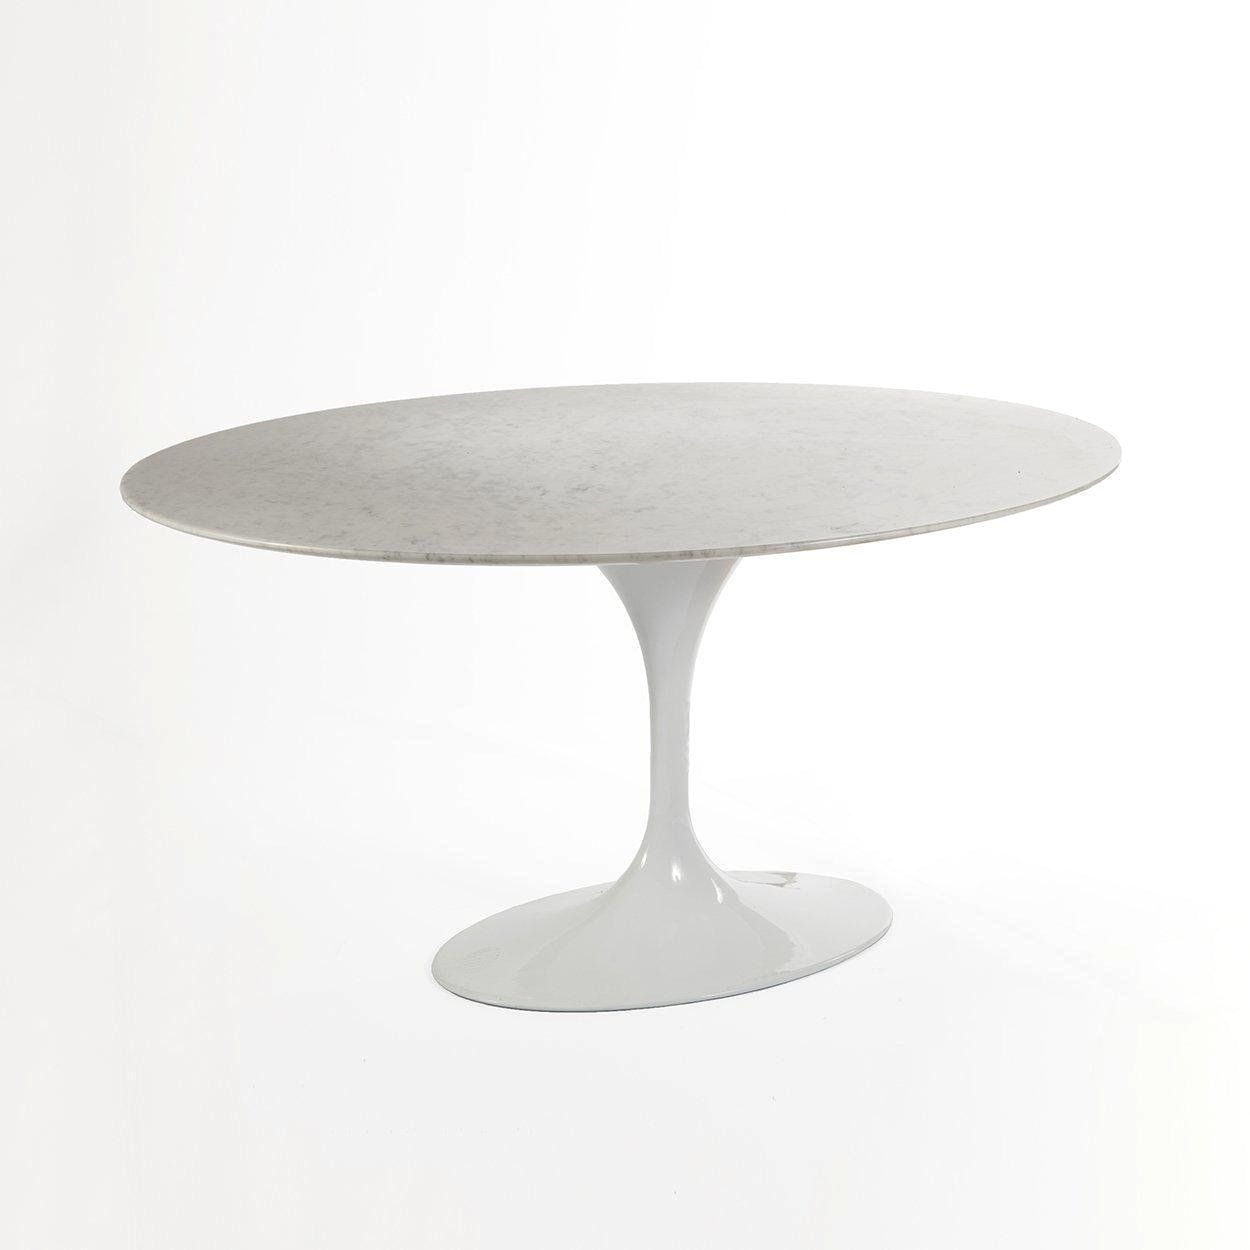 Mid Century Modern Reproduction Marble Tulip Dining Table 60 Oval Inspired By Eero Saarinen France Son Tulip Dining Table Dining Table Oval Table Dining